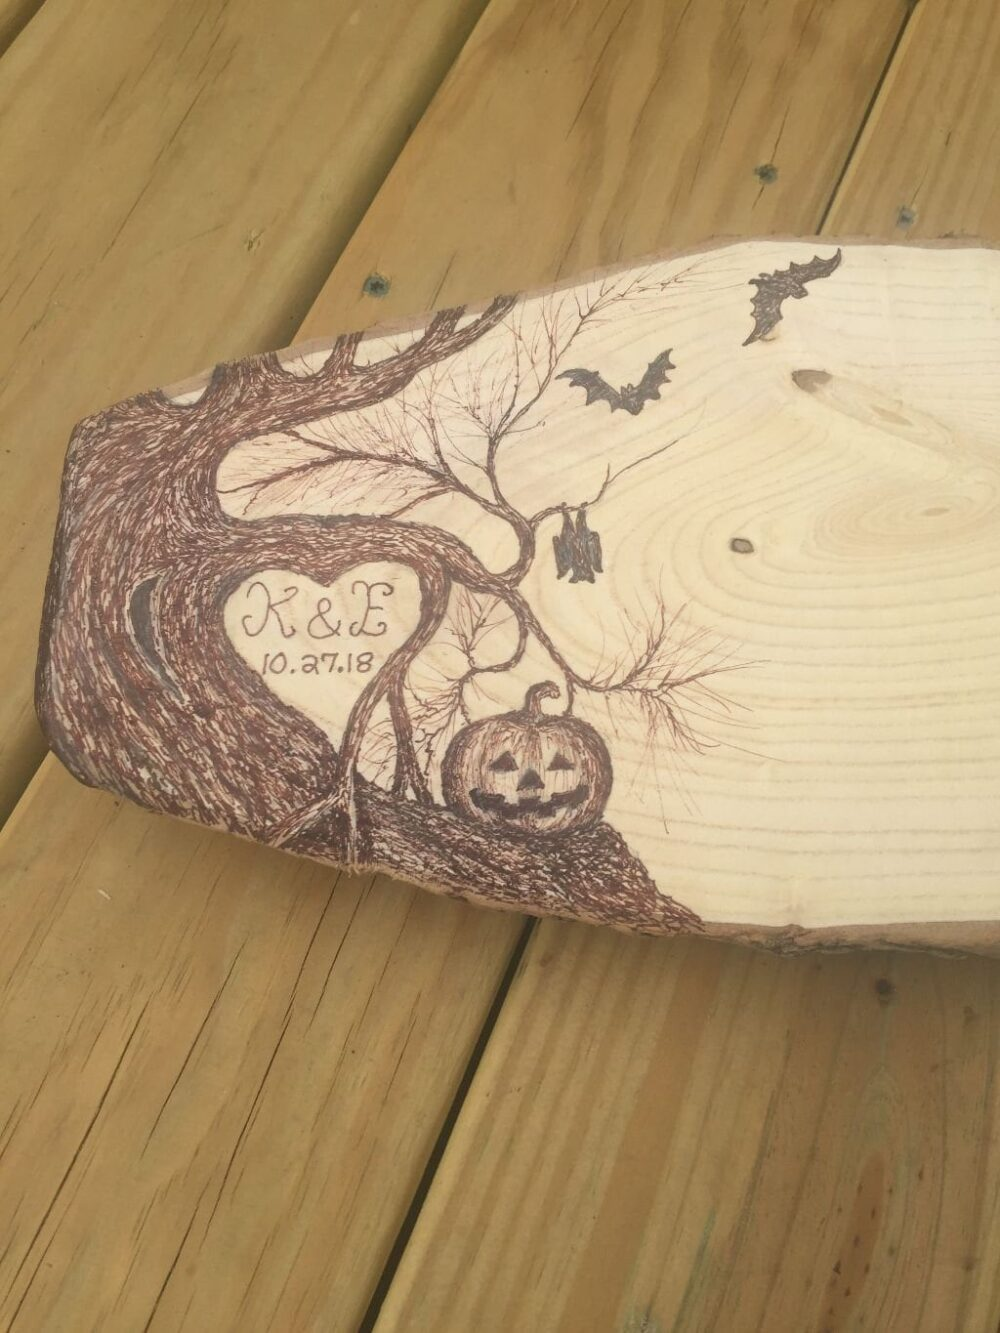 Extra Large Halloween Wedding Guest Book - 24 Inch Rustic Wood Slice Personalized Unique Anniversary Reunion